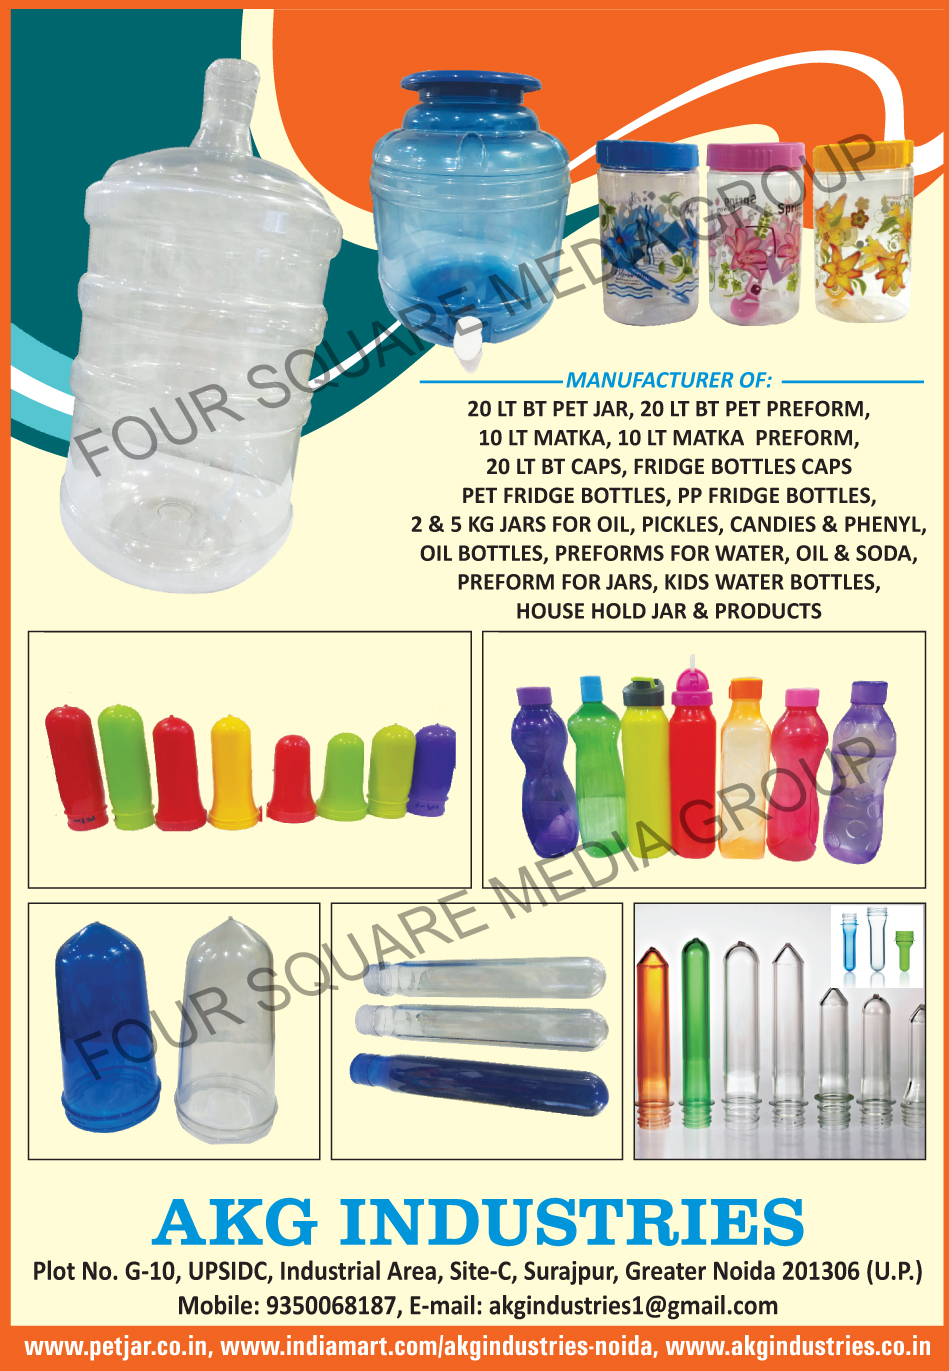 20 Ltr BT Pet Jars, 20 Ltr BT Pet Preforms, 10 Ltr Matka, 10 Ltr Matka Preforms, 20 Ltr BT Caps, Fridge Bottle Caps, Pet Fridge Bottles, PP Fridge Bottles, Oil Jars, Pickle Jars, Candy Jars, Phenyl Jars, Oil Bottles, Water Bottle Preforms, Oil Bottle Preforms, Soda Bottle Preforms, Jar Preforms, Kids Water Bottle Preforms, House Hold Jar Preforms, Household Jar Preforms, Pet Jars, Pet Preforms